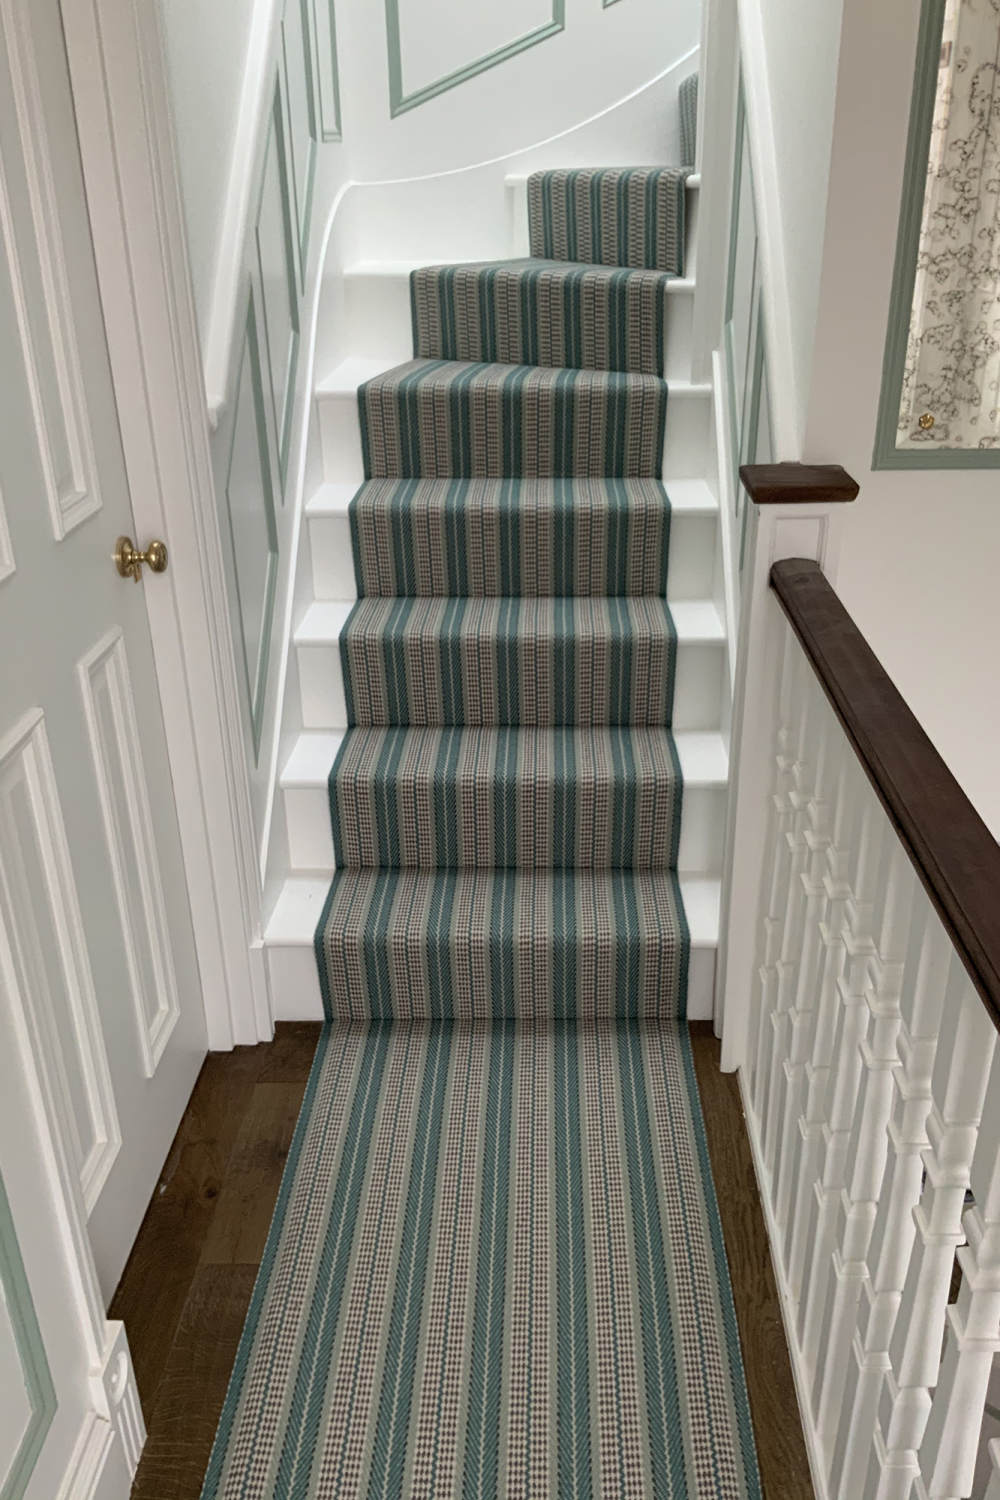 Vernon Teal fitted on 6 winding steps over a 180 degree turn